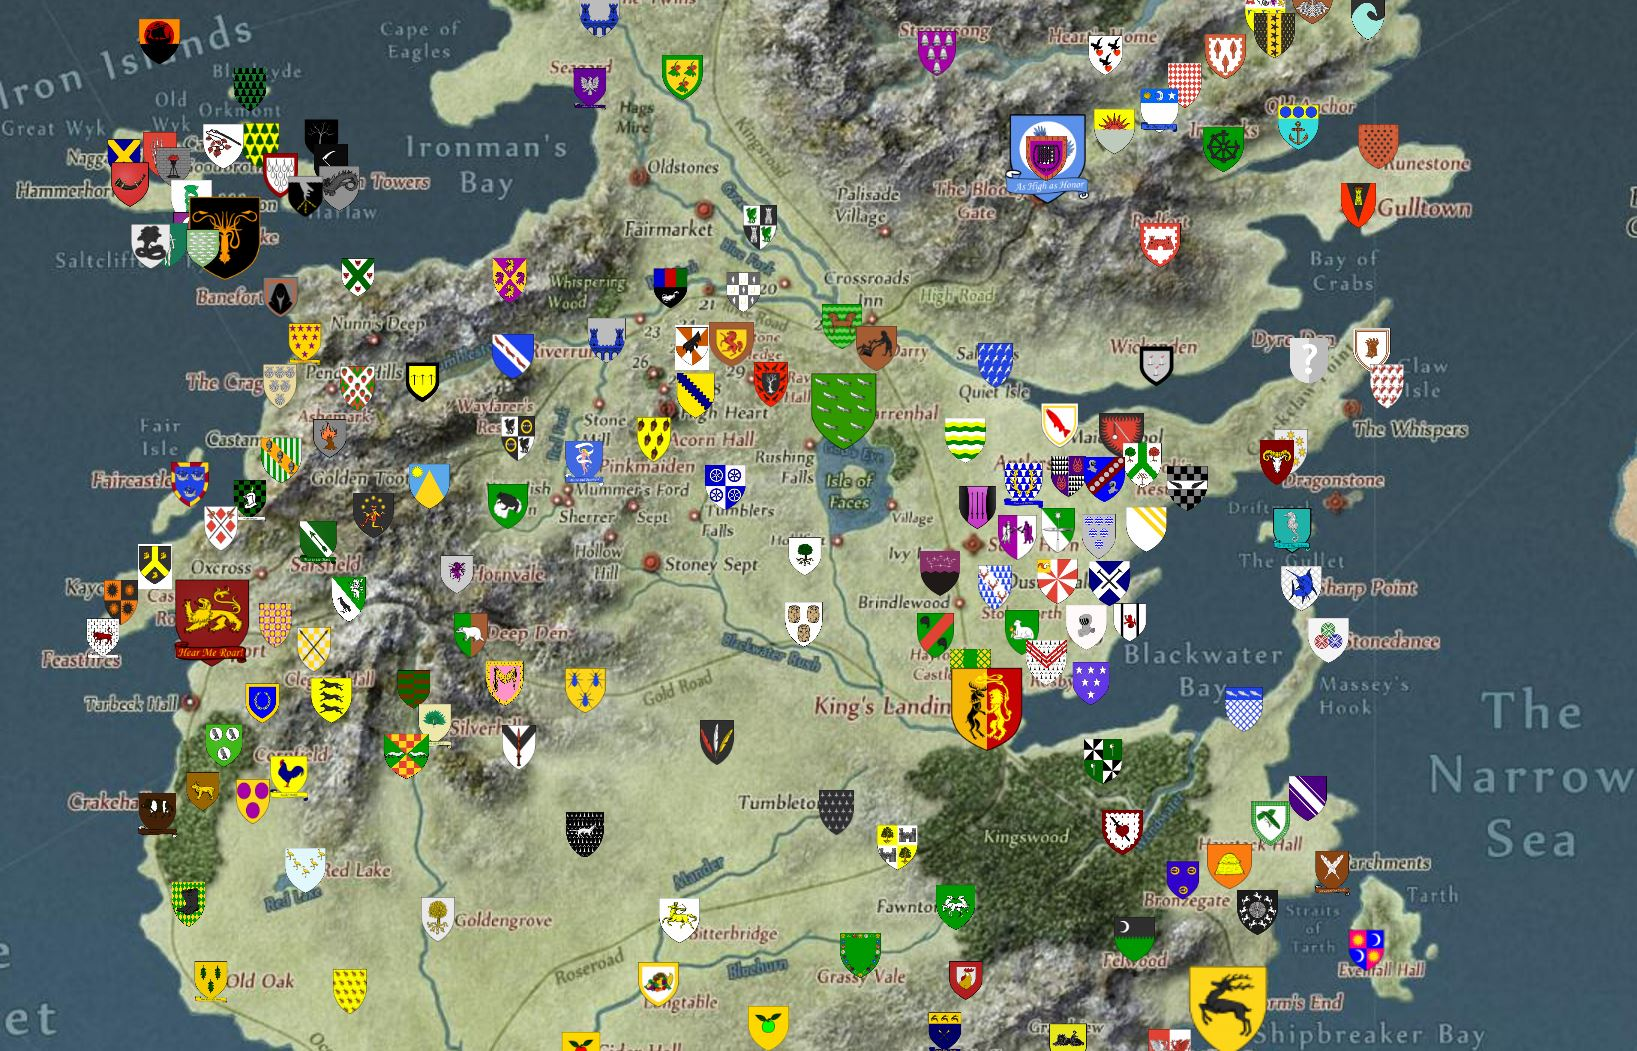 detailed map of game thrones with Interactive Map Of Game Of Thr on The Maps Of A Song Of Ice And Fire Fan Maps together with Ultimate Guide To Turning Minecraft Into A Game Of Thrones Sandbox in addition Behold The Interactive Map Of Faerun likewise More Maps Of Westeros besides Age Of Empires 2 Hd The African Kingdoms.